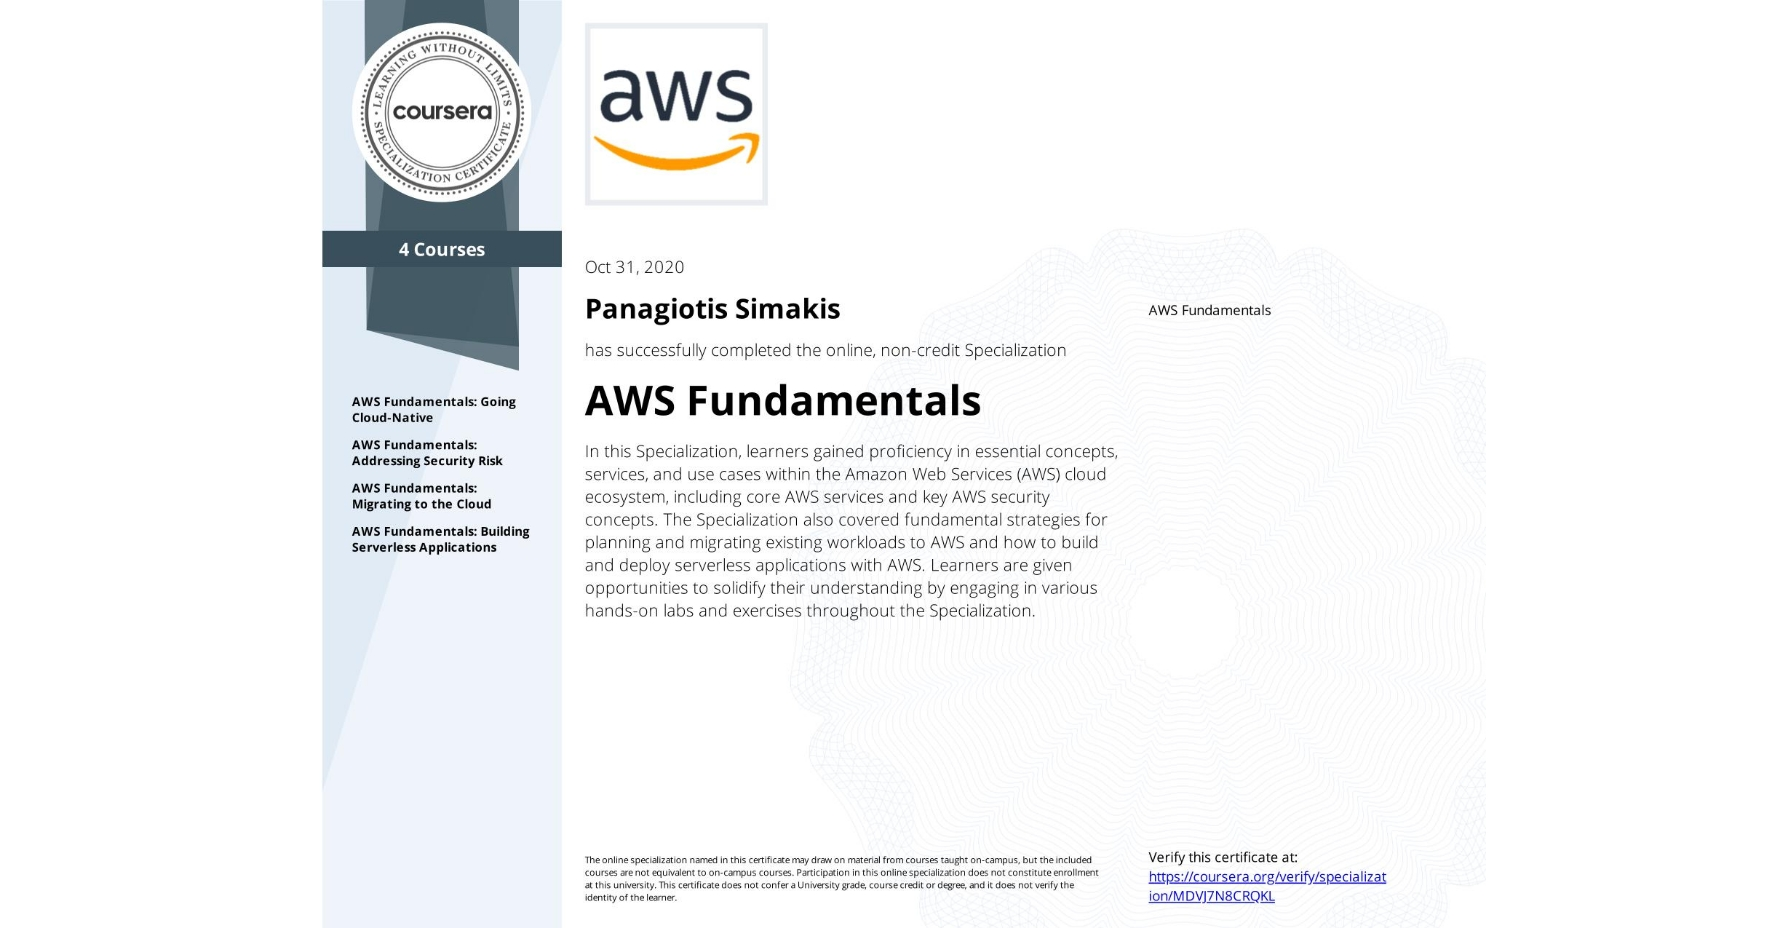 View certificate for Panagiotis Simakis, AWS Fundamentals, offered through Coursera. In this Specialization, learners gained proficiency in essential concepts, services, and use cases within the Amazon Web Services (AWS) cloud ecosystem, including core AWS services and key AWS security concepts. The Specialization also covered fundamental strategies for planning and migrating existing workloads to AWS and how to build and deploy serverless applications with AWS. Learners are given opportunities to solidify their understanding by engaging in various hands-on labs and exercises throughout the Specialization.